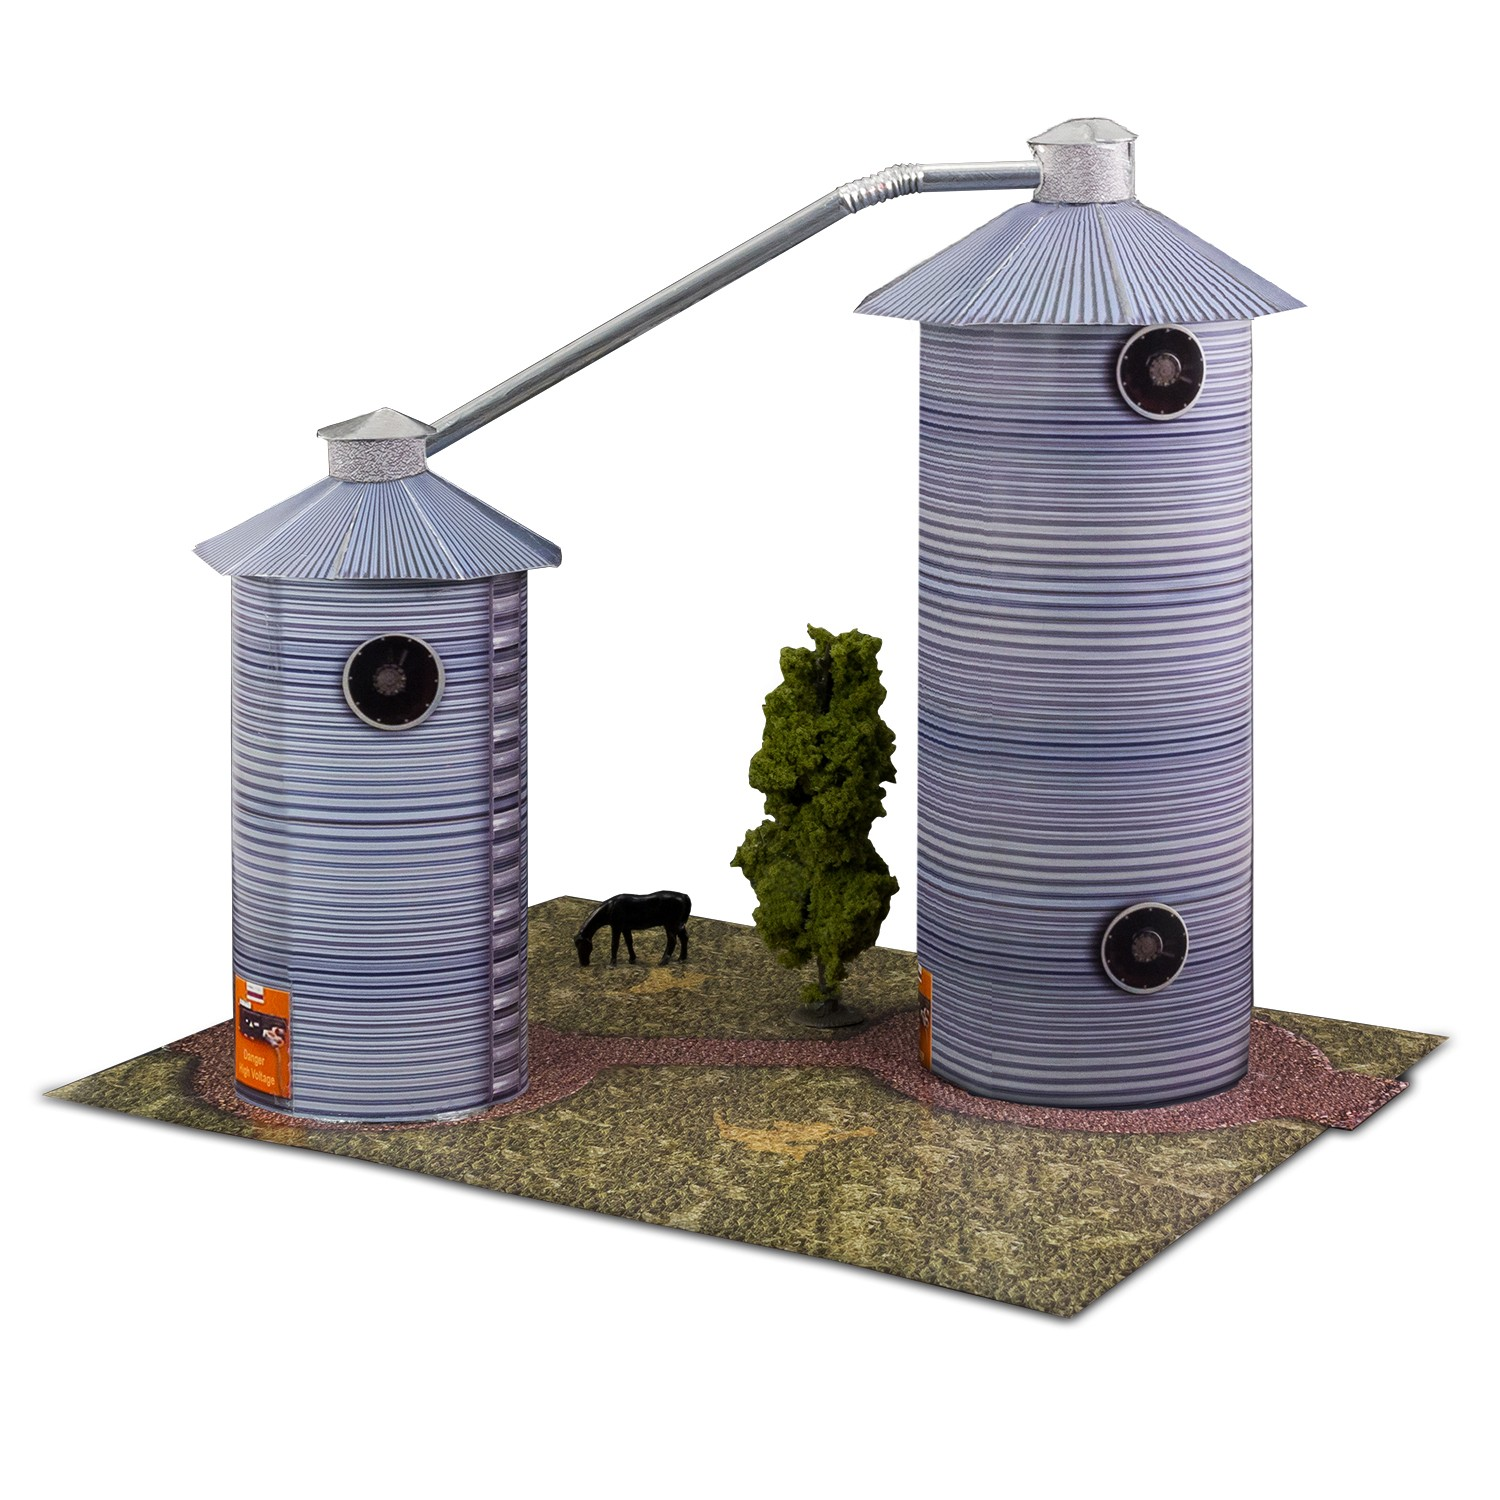 """BK 6404 1:64 Scale """"Grain Dryers"""" Photo Real Scale Building Kit"""